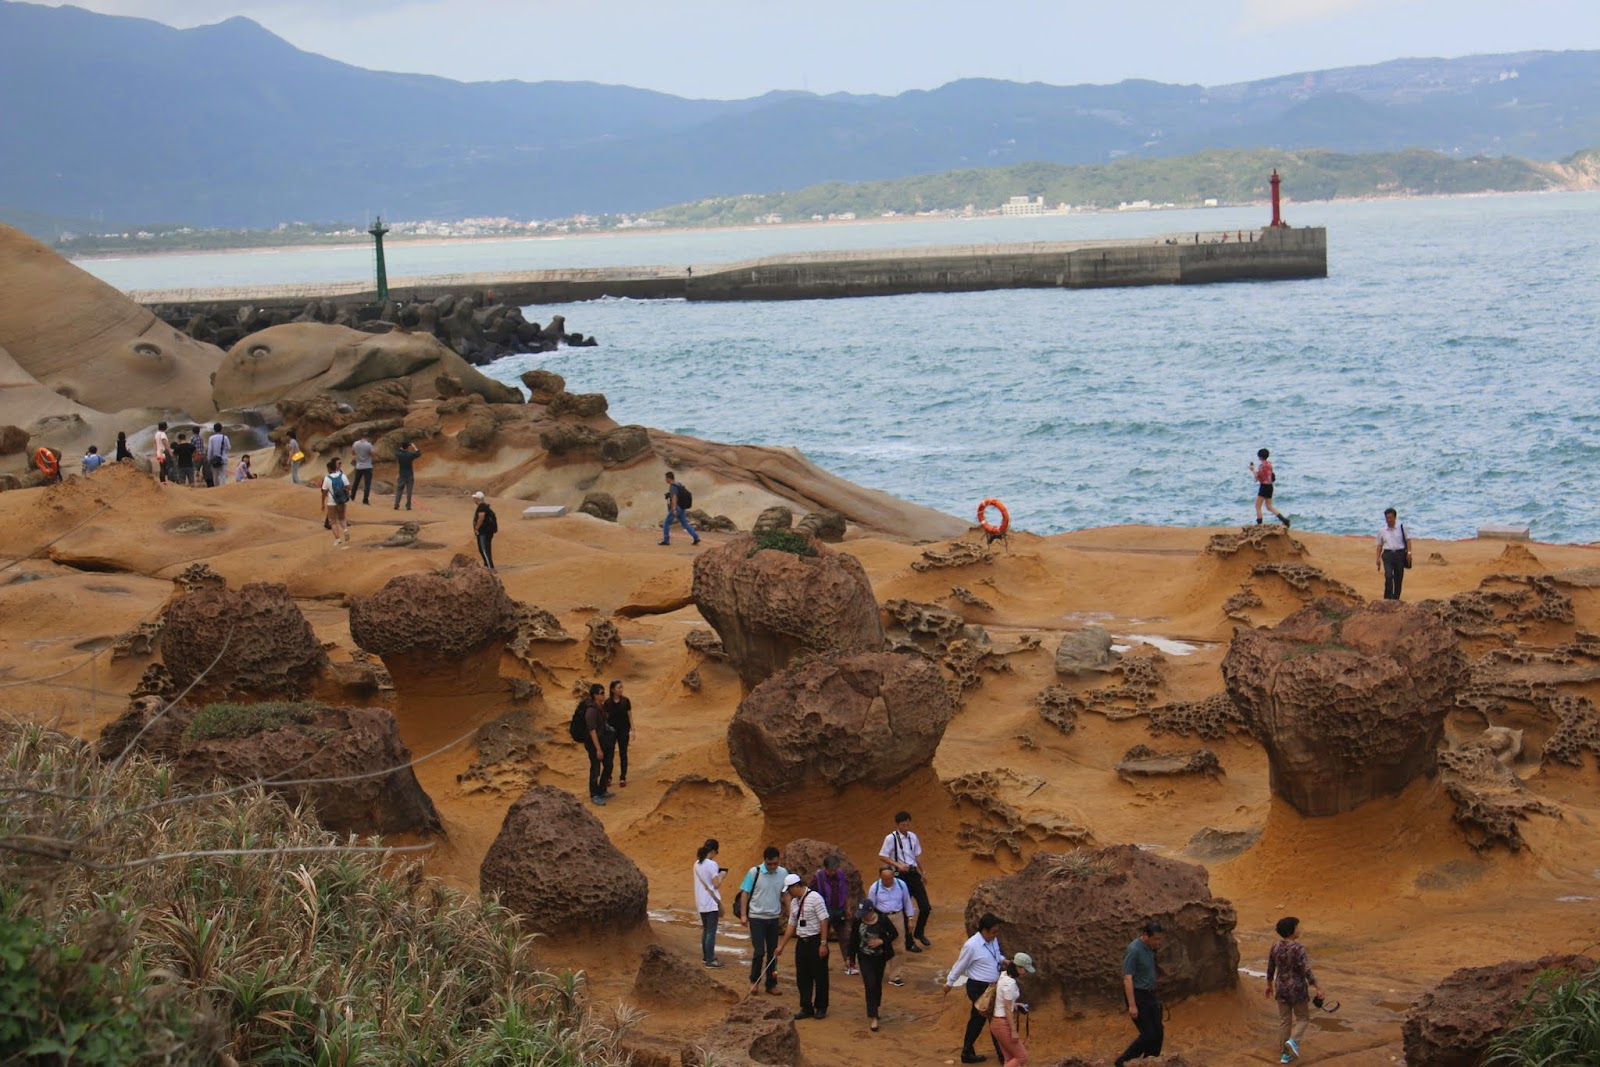 The Carp Rock is located near the sea water and behind the light houses at Yeh Liu Geopark at Wanli of New Taipei City of Taiwan